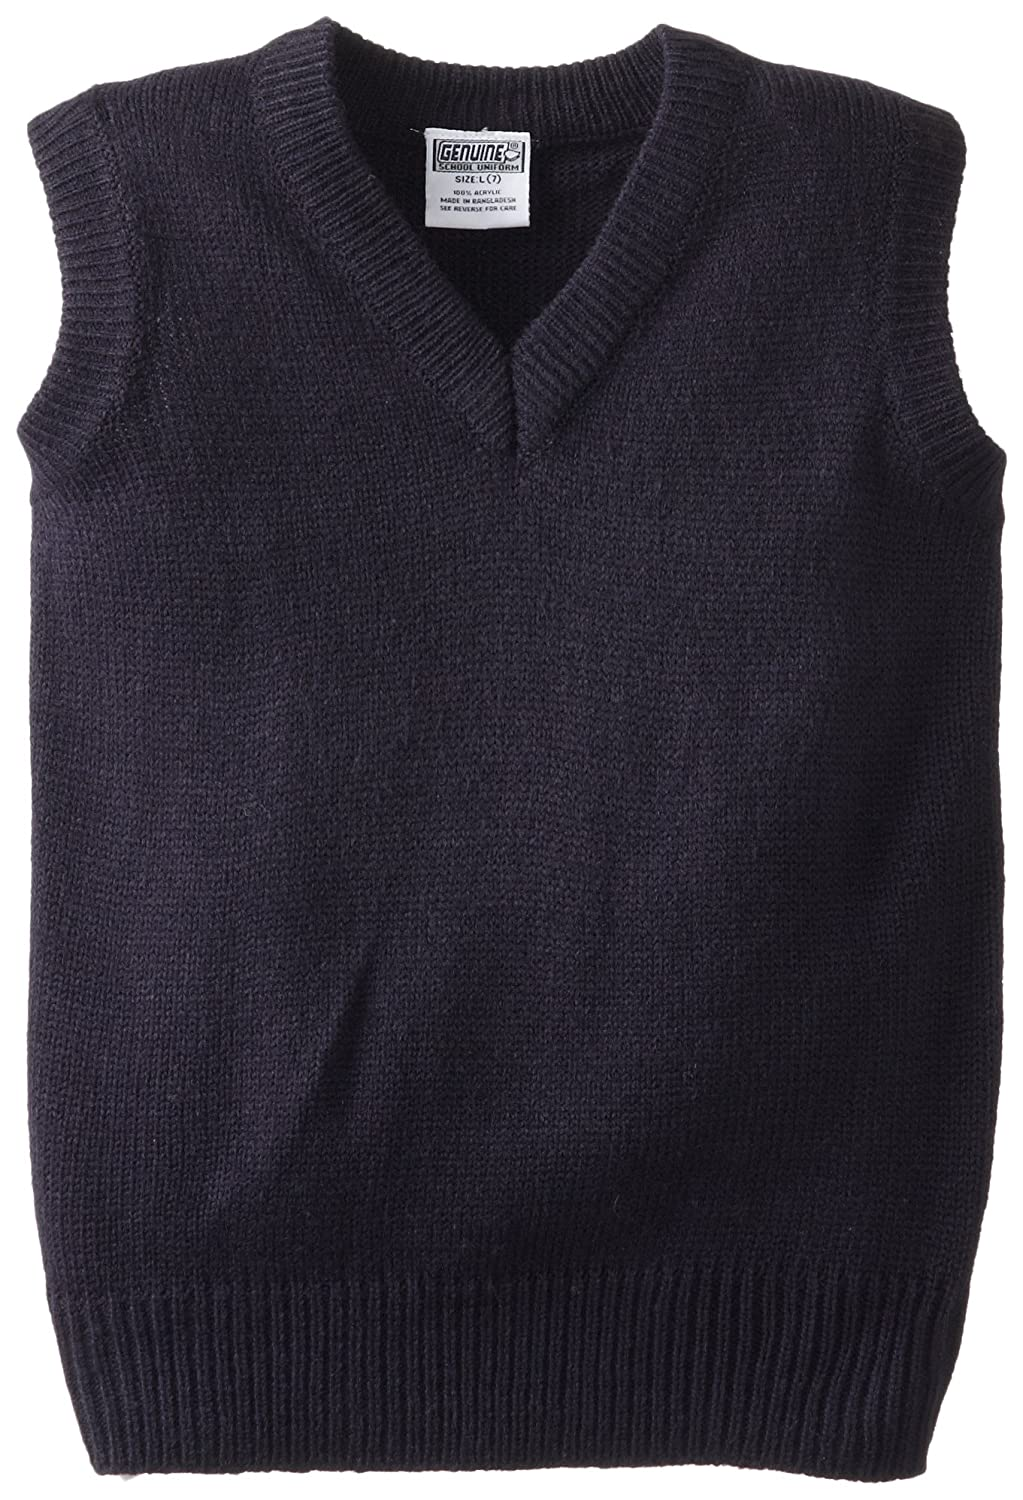 Genuine Little Boys' Sweater (More Styles Available) Genuine Boys 2-7 W55941